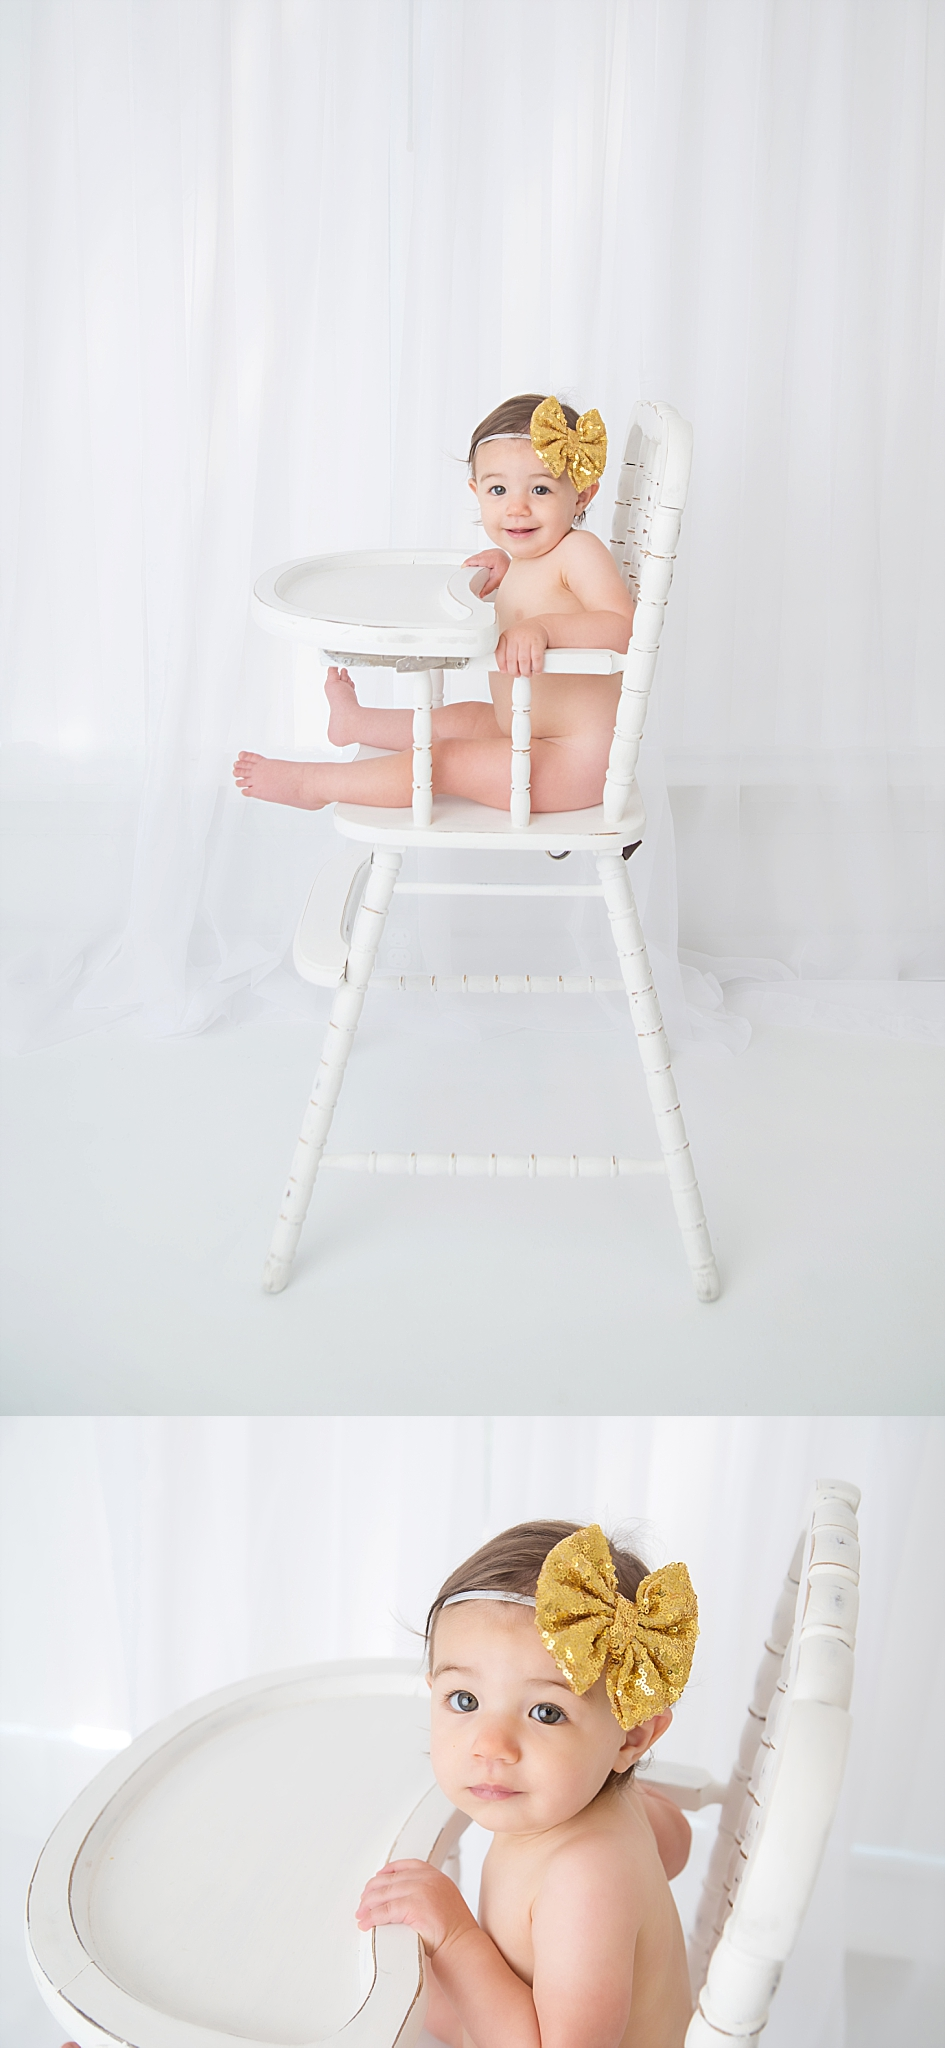 st-louis-first-birthday-cake-smash-photographer-baby-girl-in-white-high-chair-with-white-window-curtain.jpg